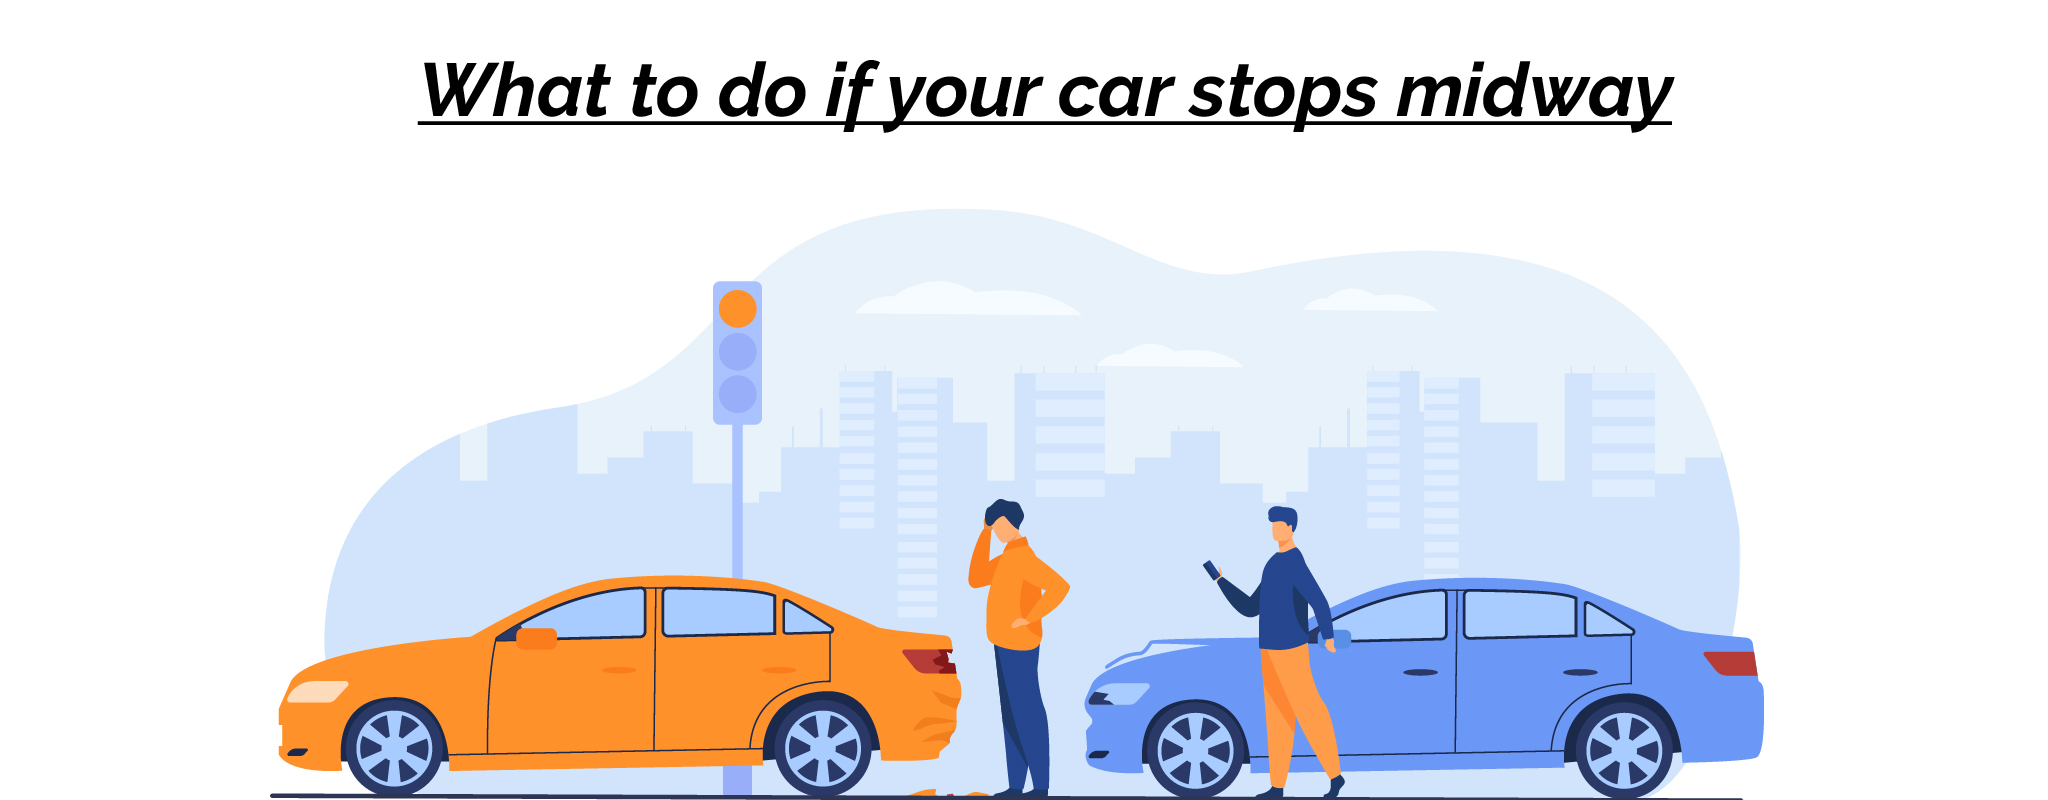 What to do if your car stops midway-01